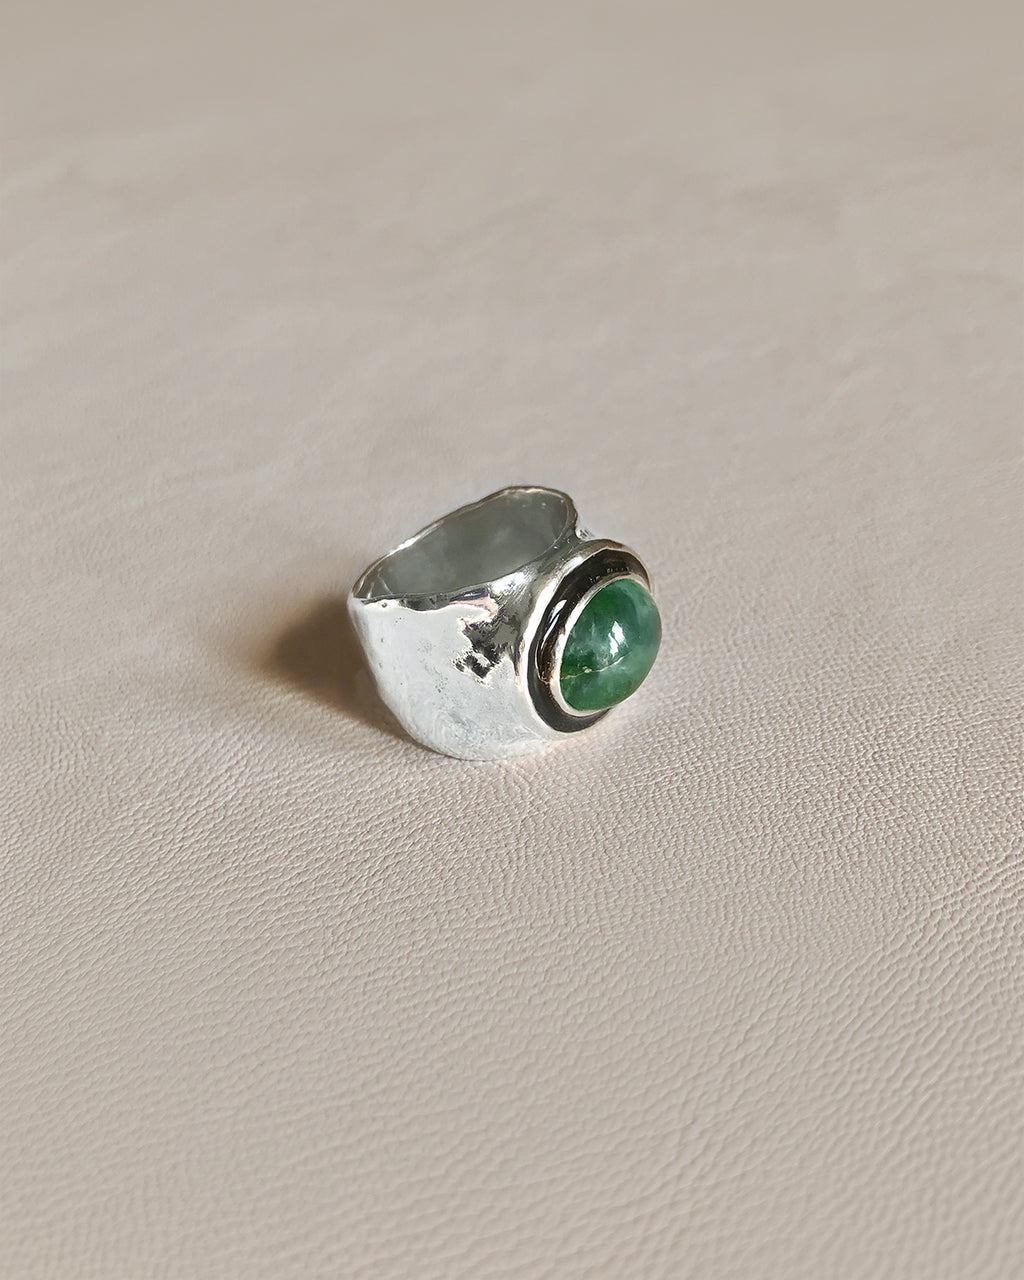 GIORGIO WITH JADE // silver ring - ORA-C jewelry - handmade jewelry by Montreal based independent designer Caroline Pham